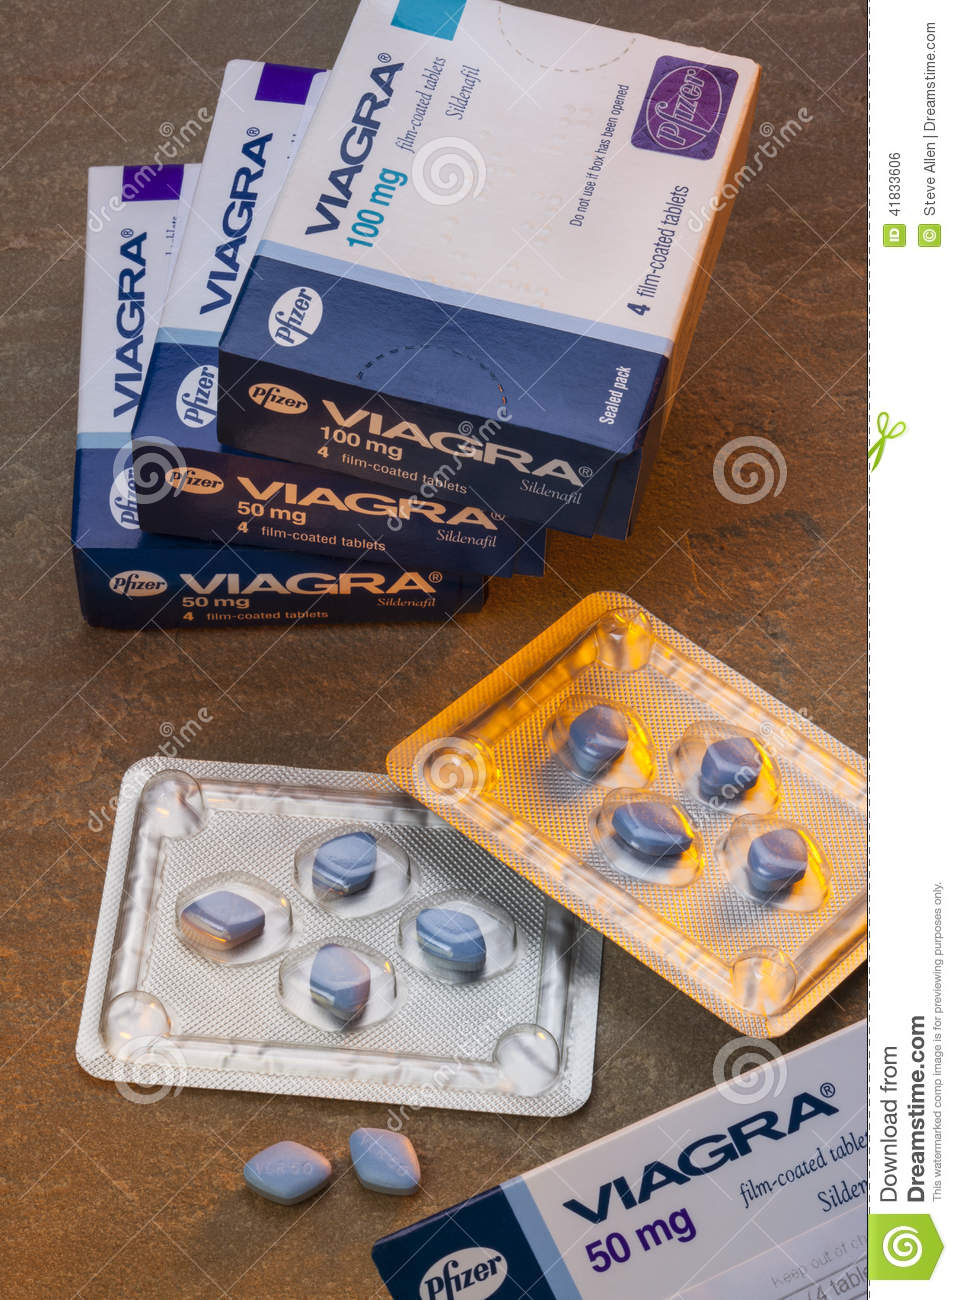 Viagra other uses